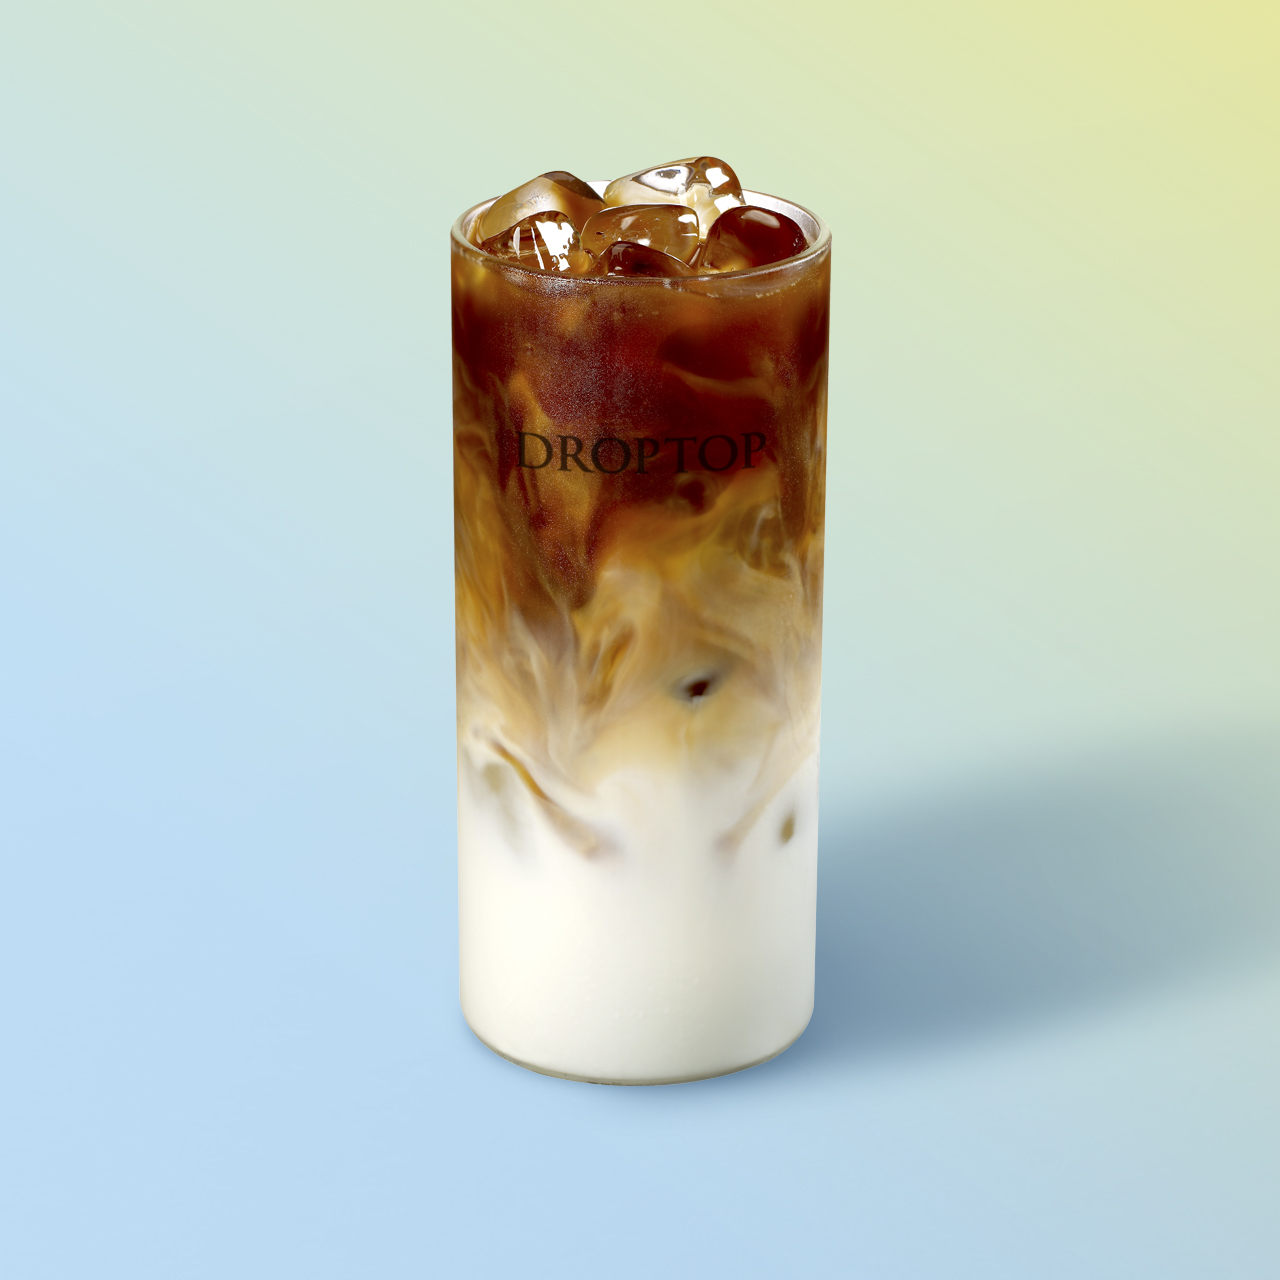 연유 콜드브루 라떼 (Condensed Milk Coldbrew Latte)